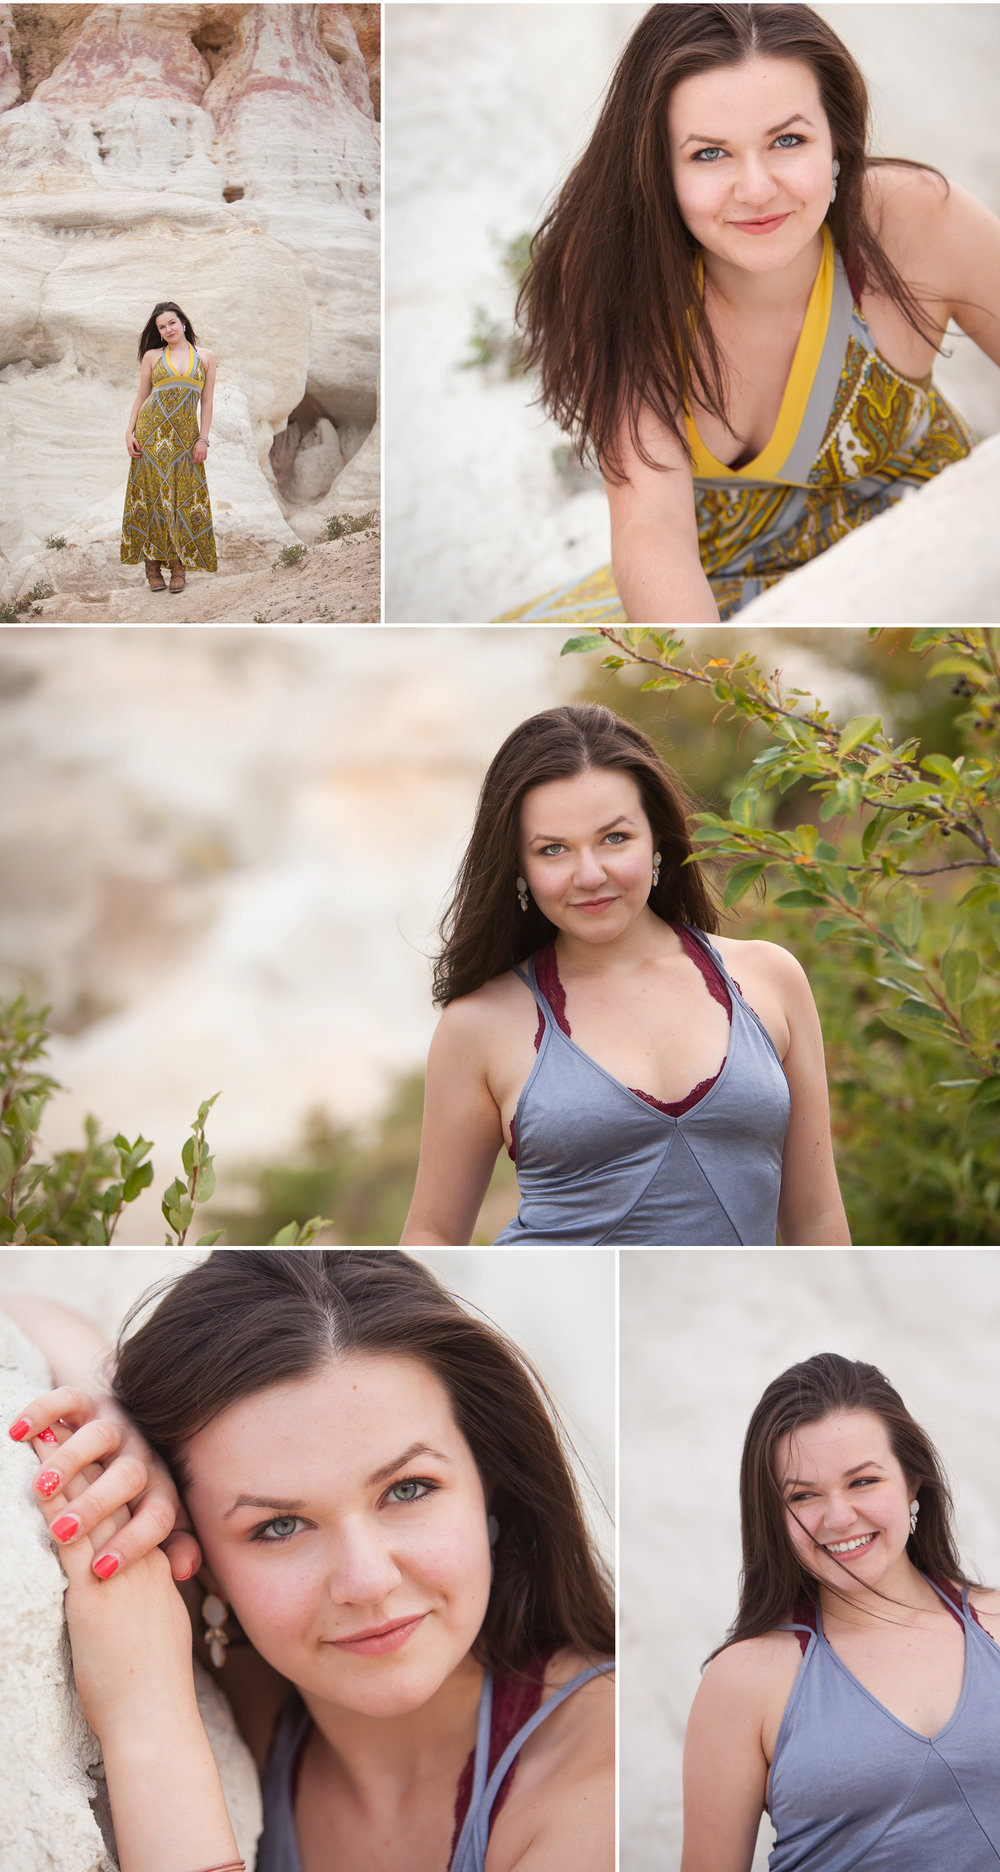 Senior Session at Painted Mines, photographer Jennifer Koskinen